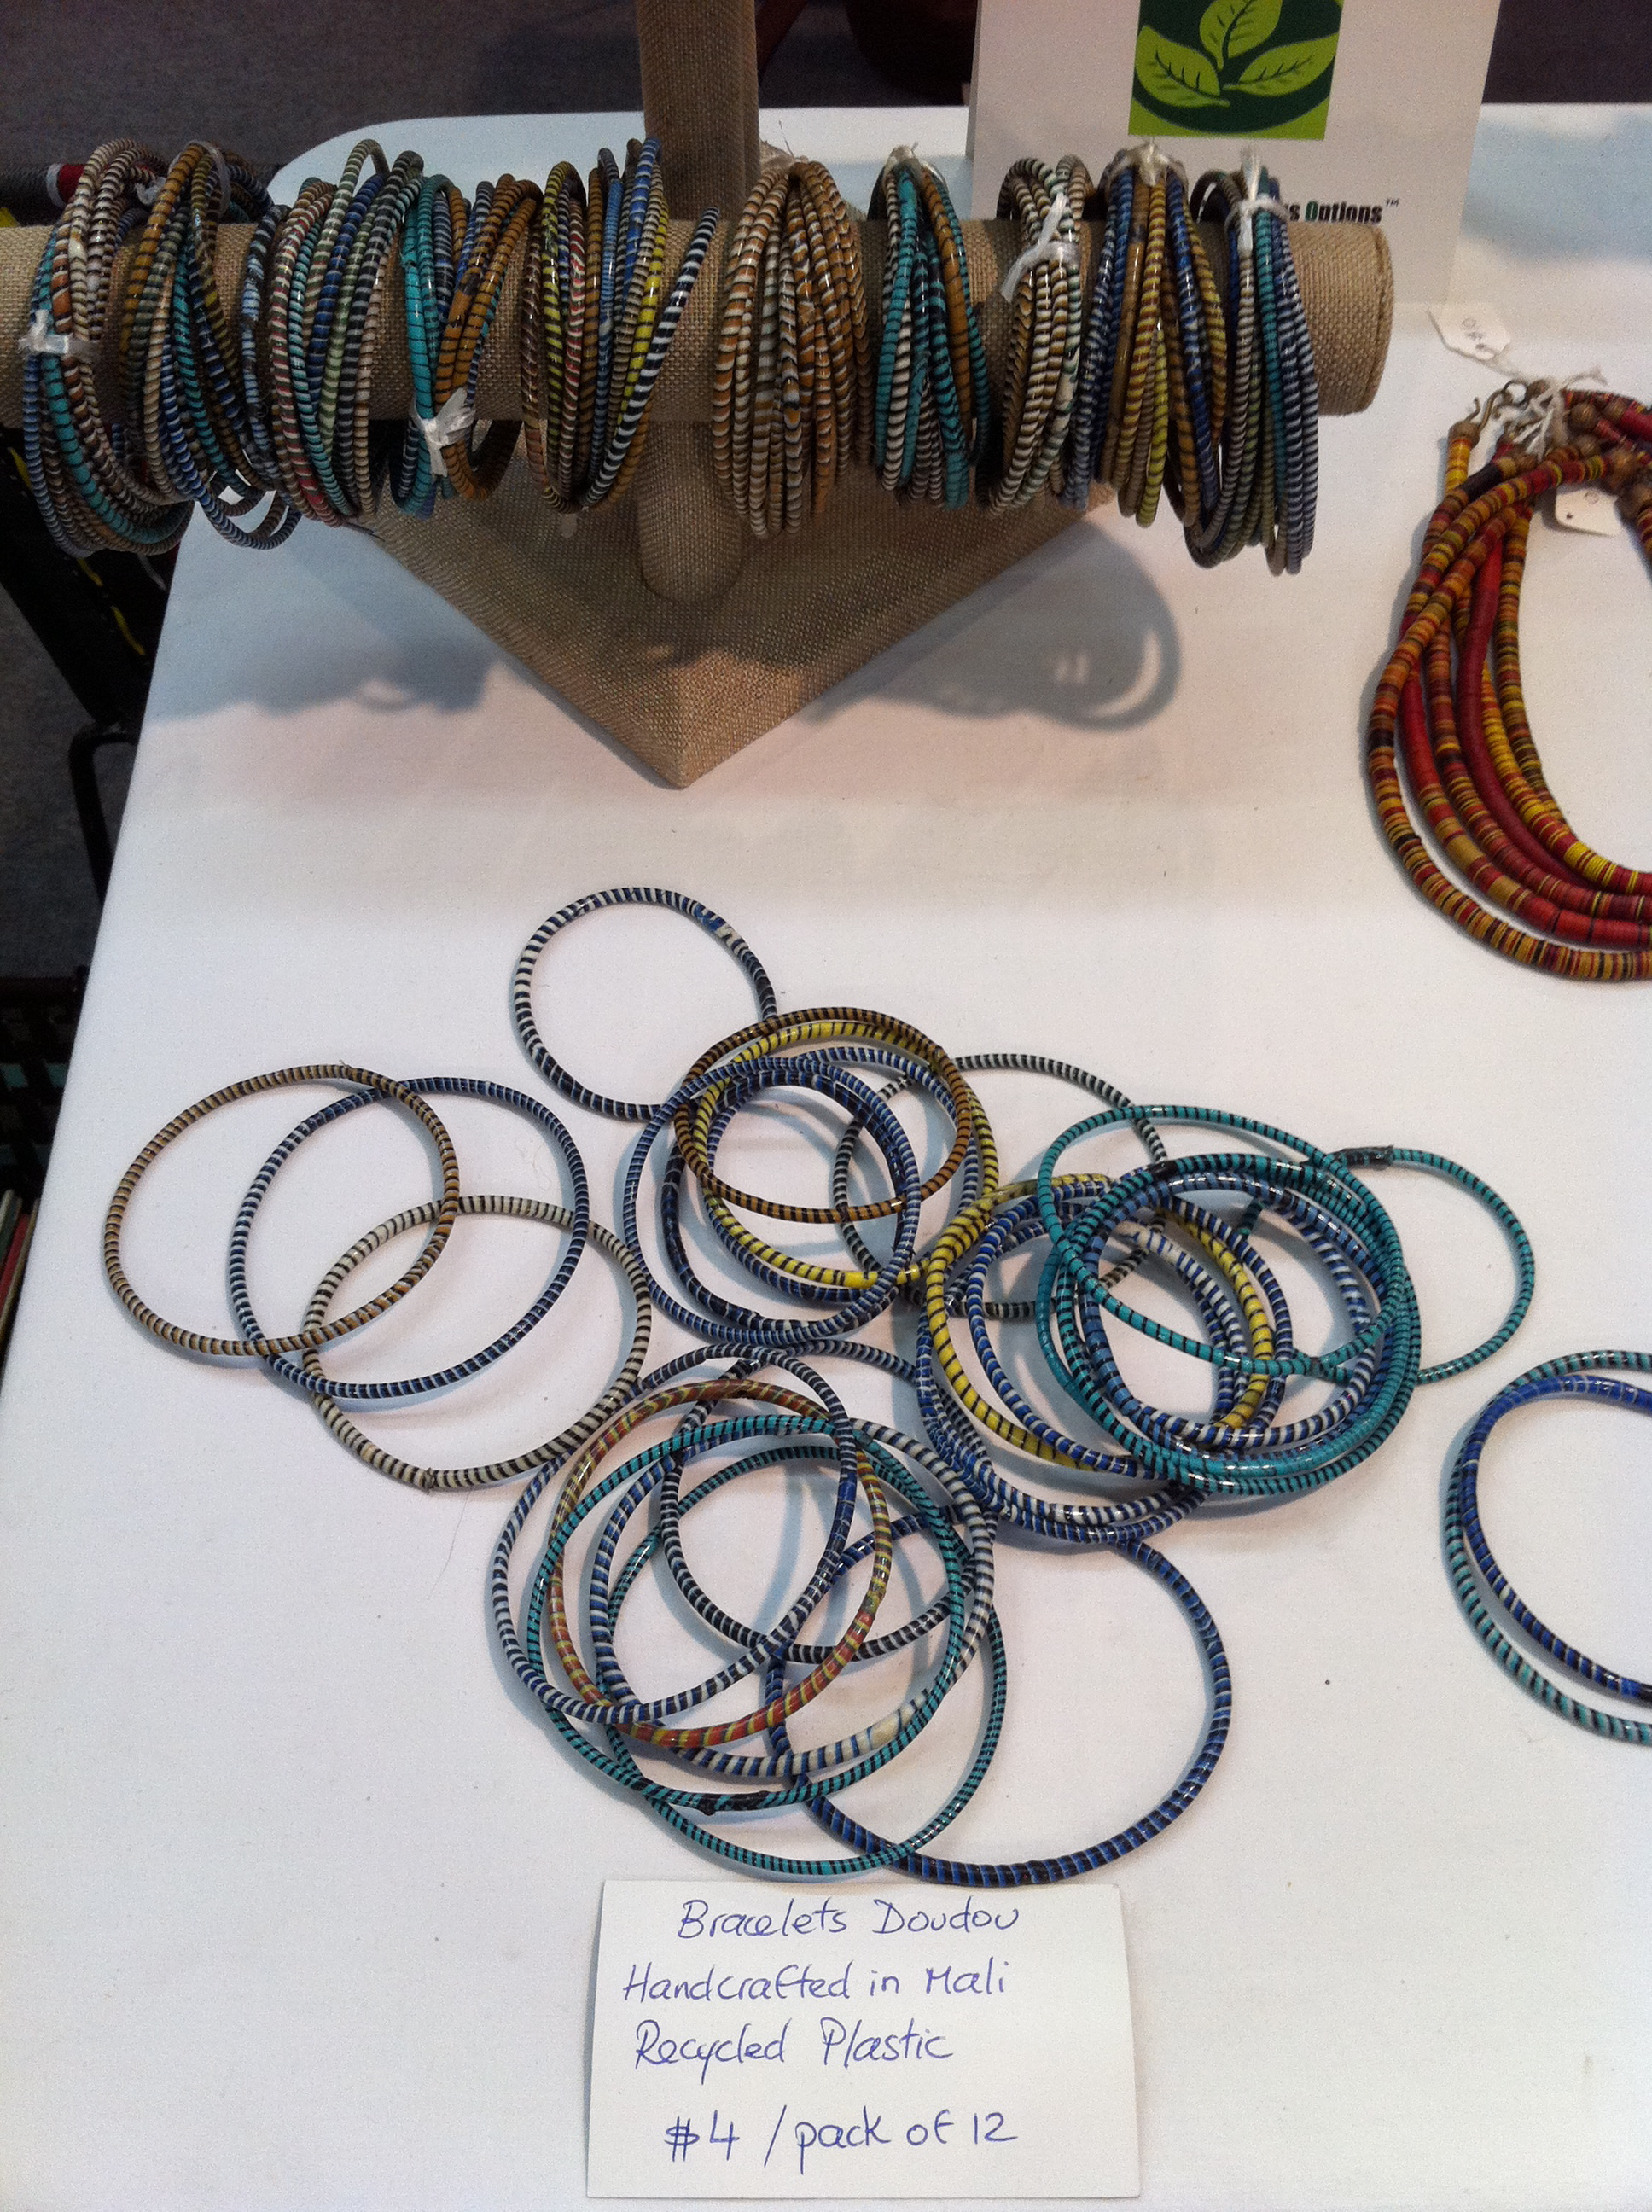 Recycled Plastic Bracelets at the NYGIF